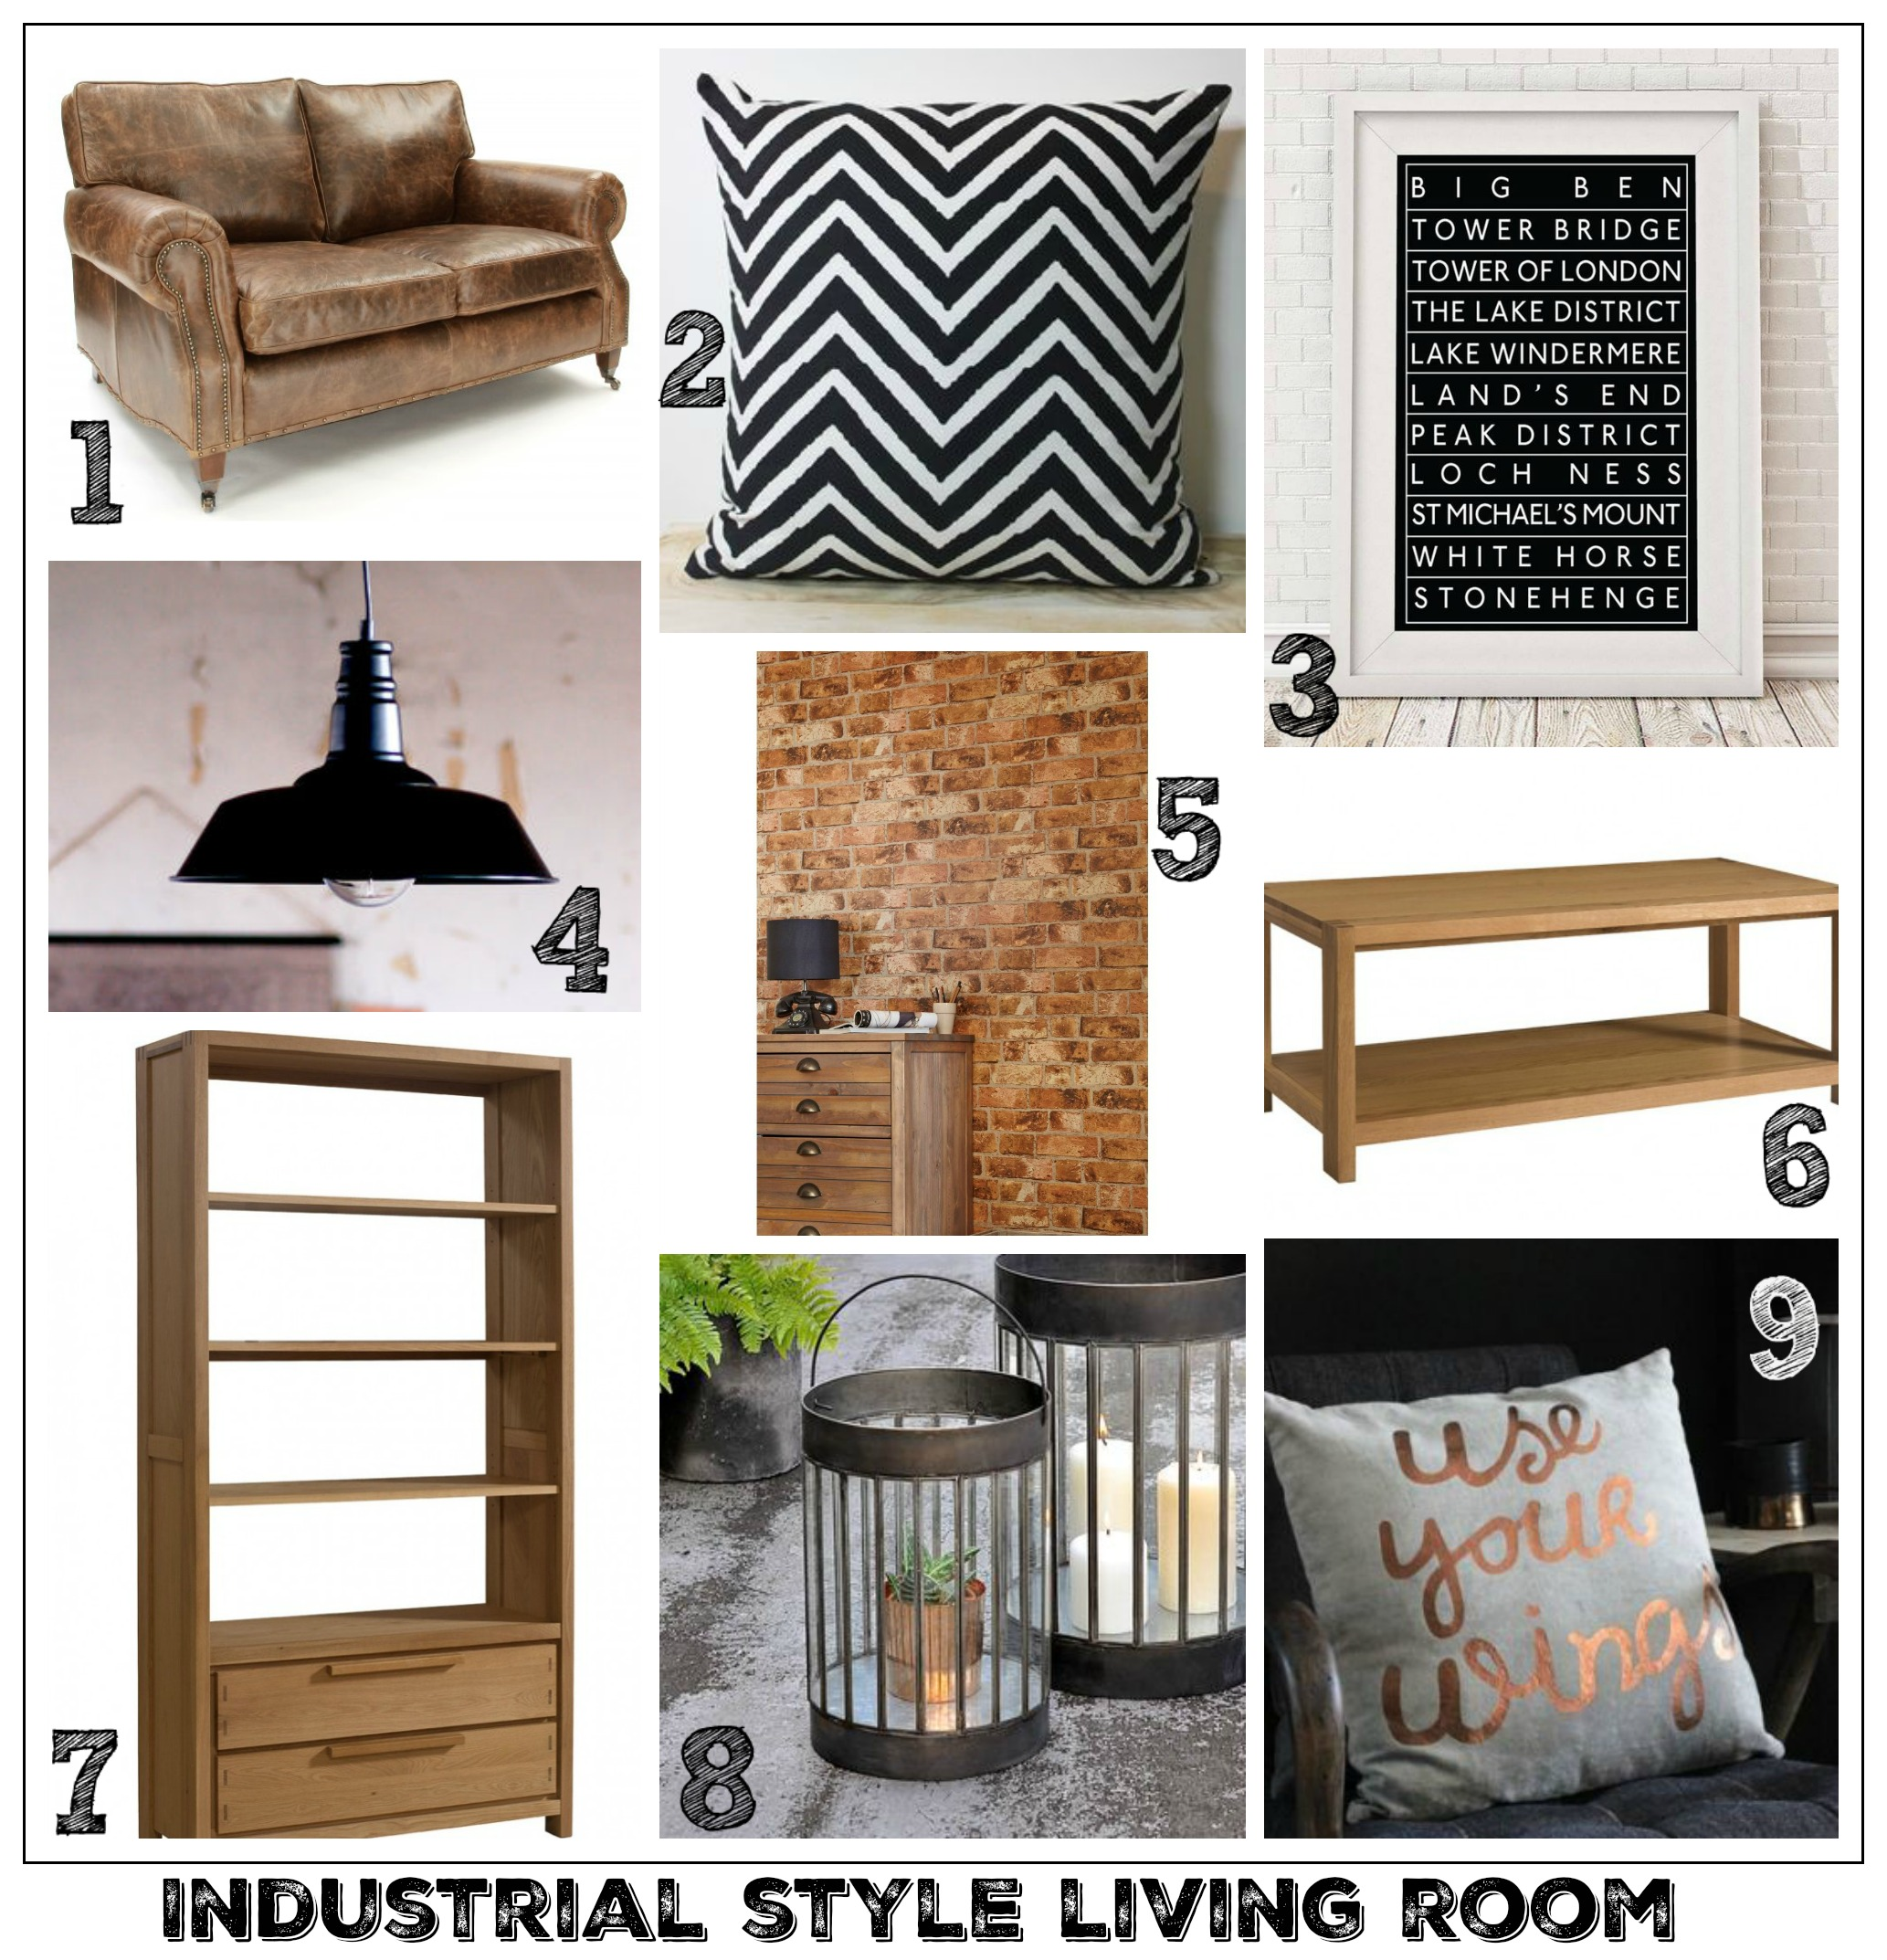 Living Room Industrial Style Living Room solid oak furniture for a modern industrial living room fresh style idea